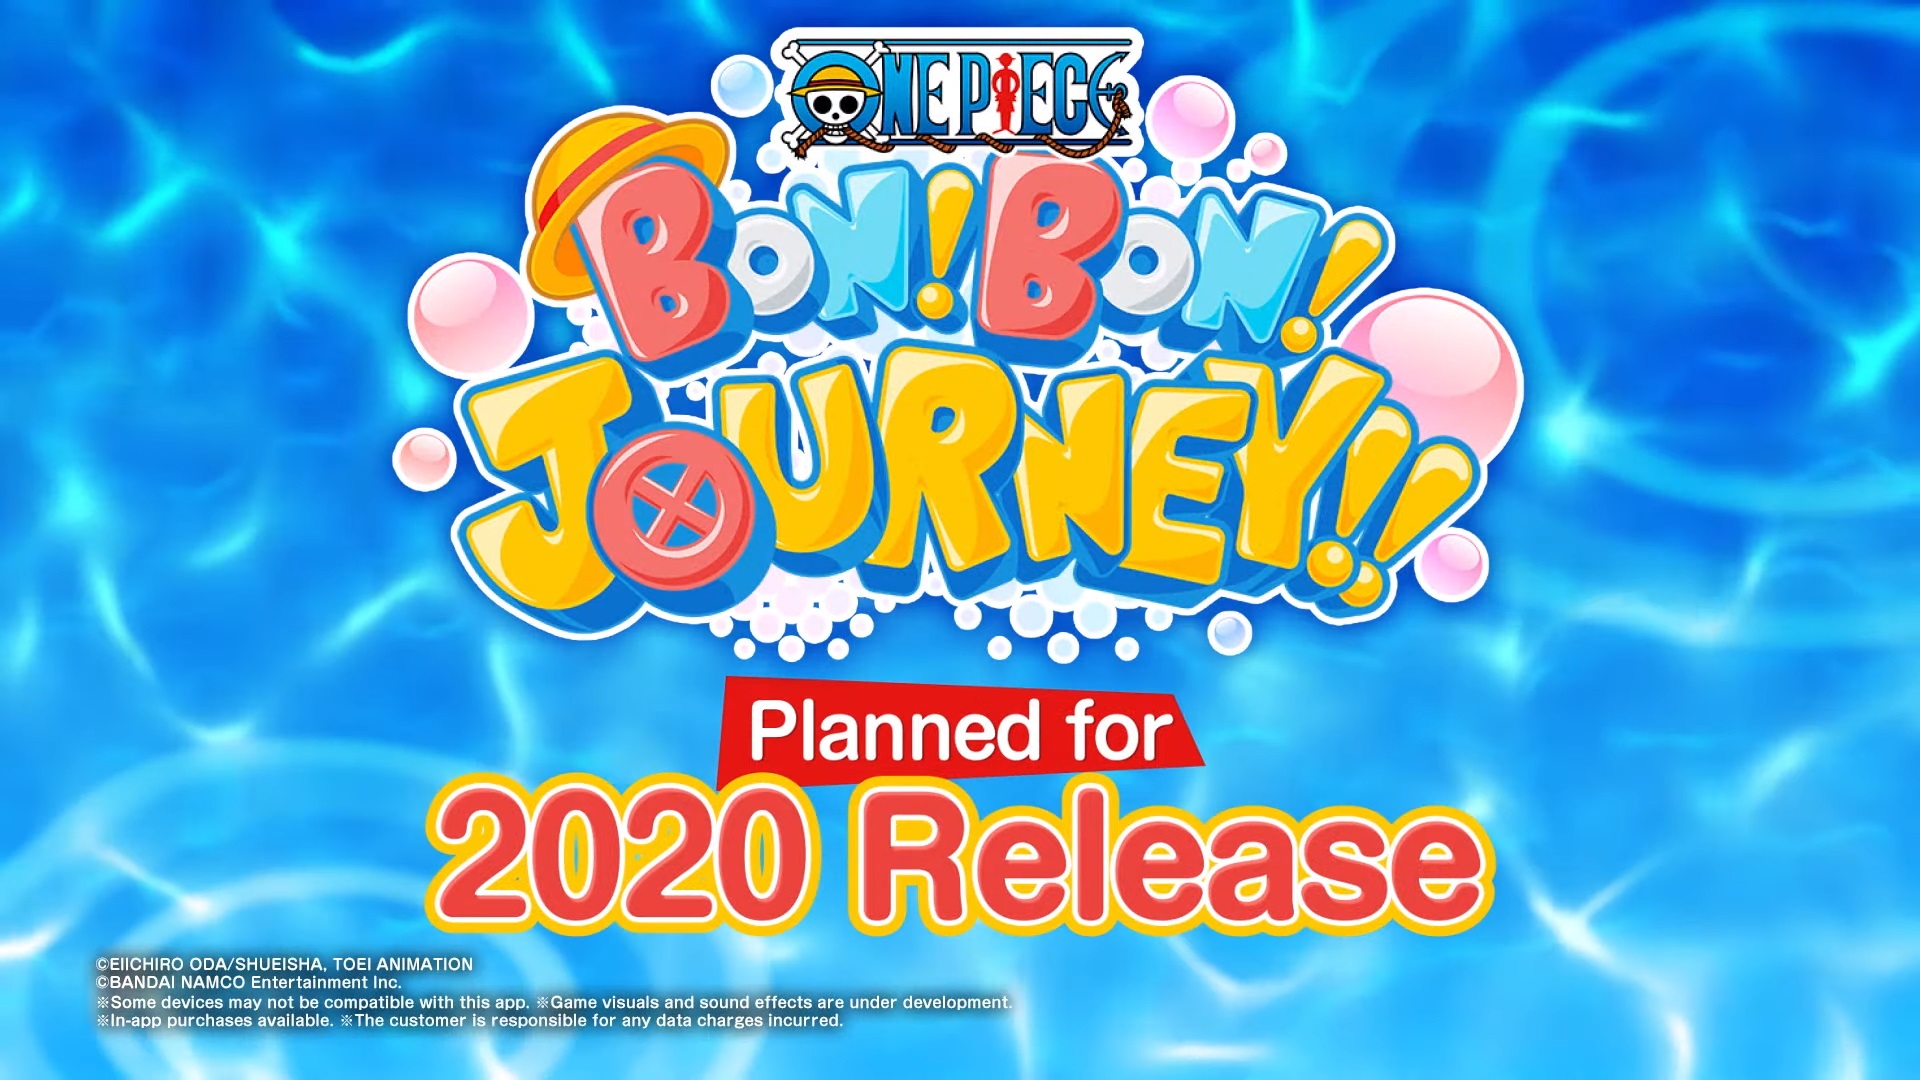 ONE PIECE BON! BON! JOURNEY!! Sets Sail for Adorable Adventures this Year